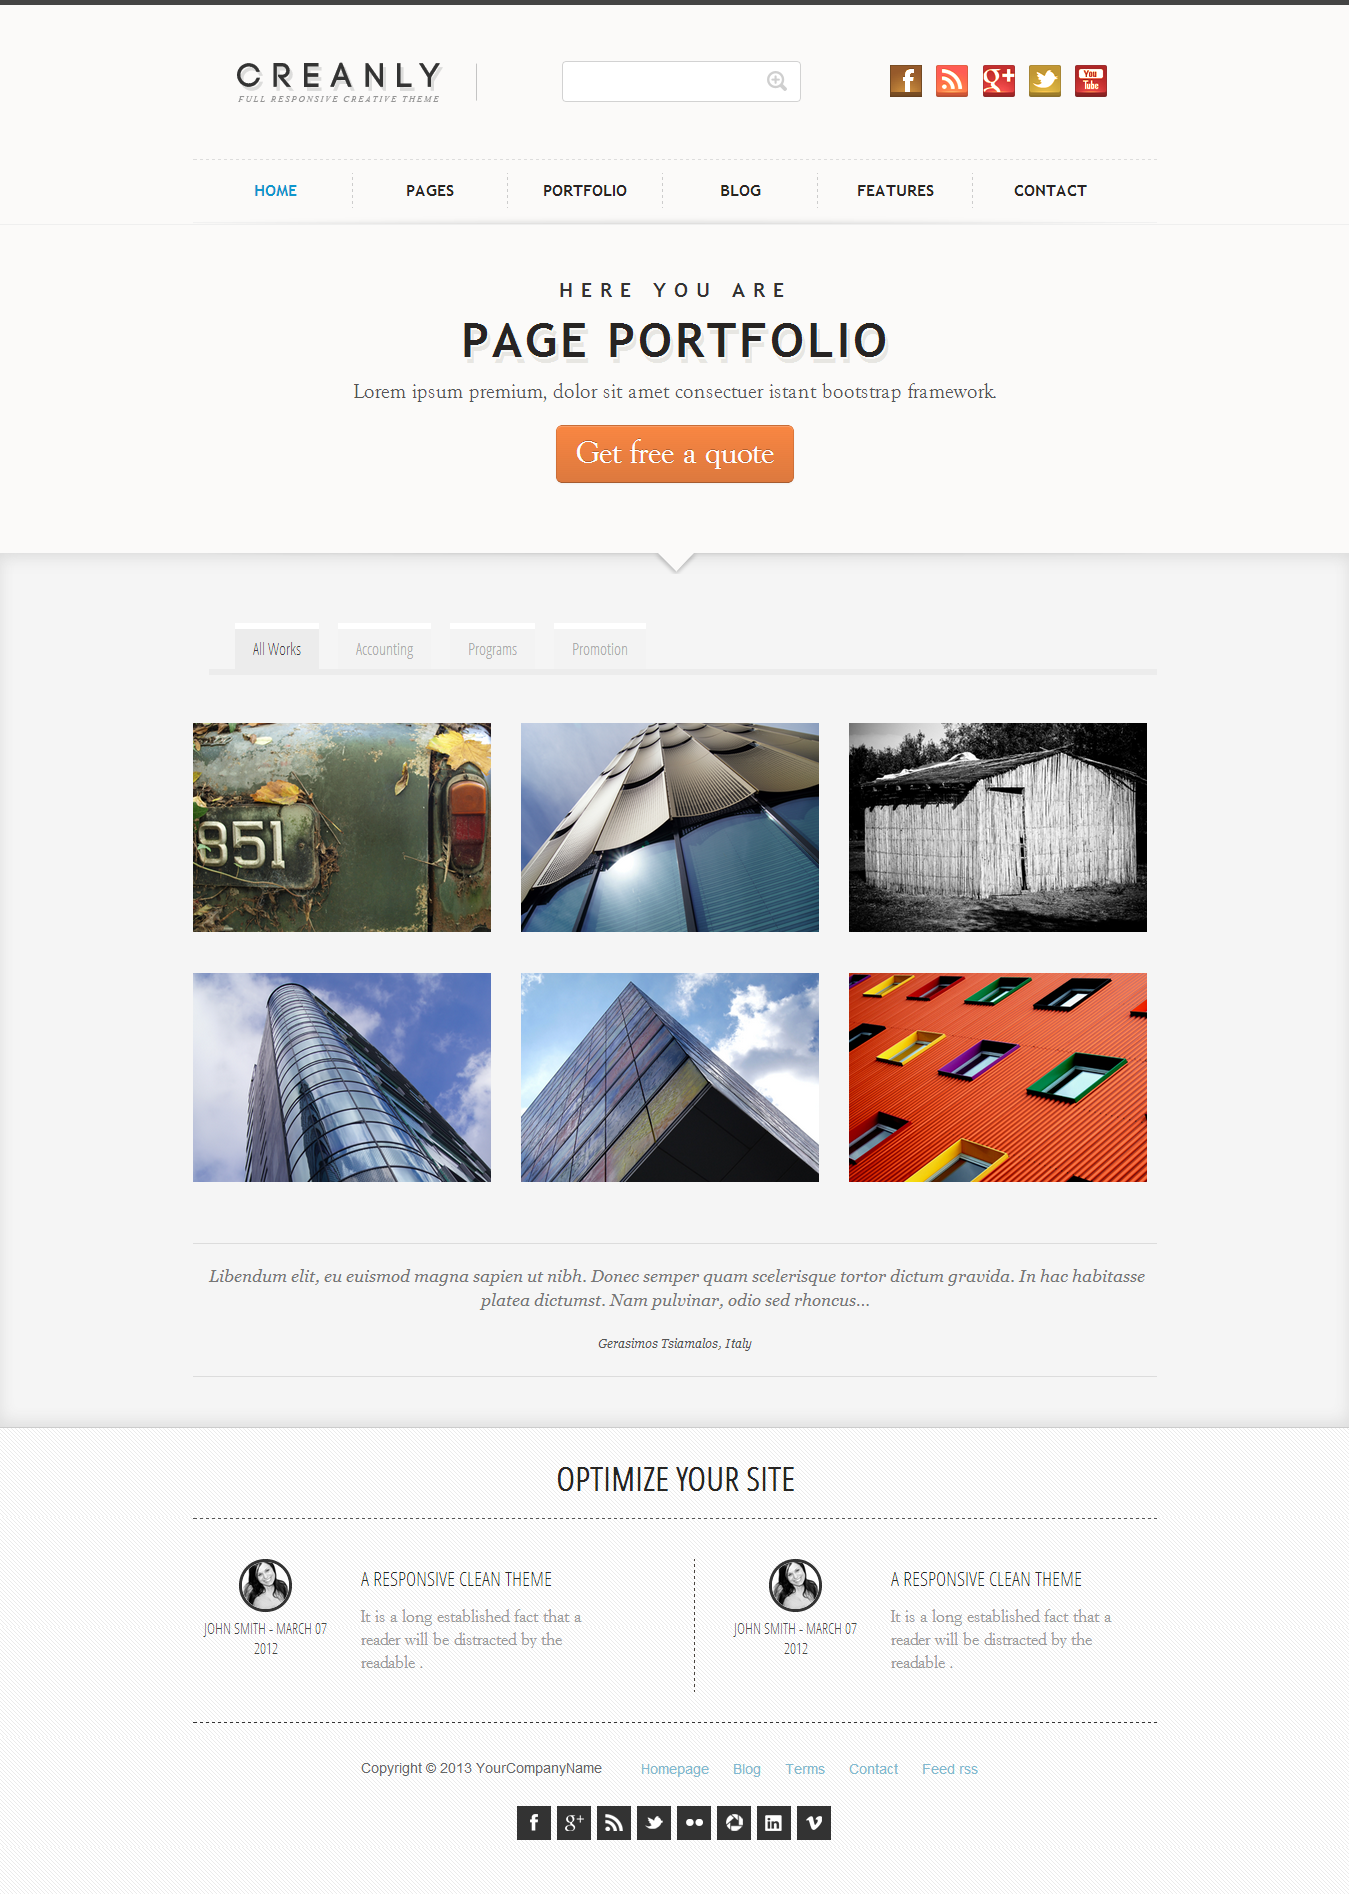 Creanly - Responsive clean theme design - This is a first version of the two portfolio available on crealy theme